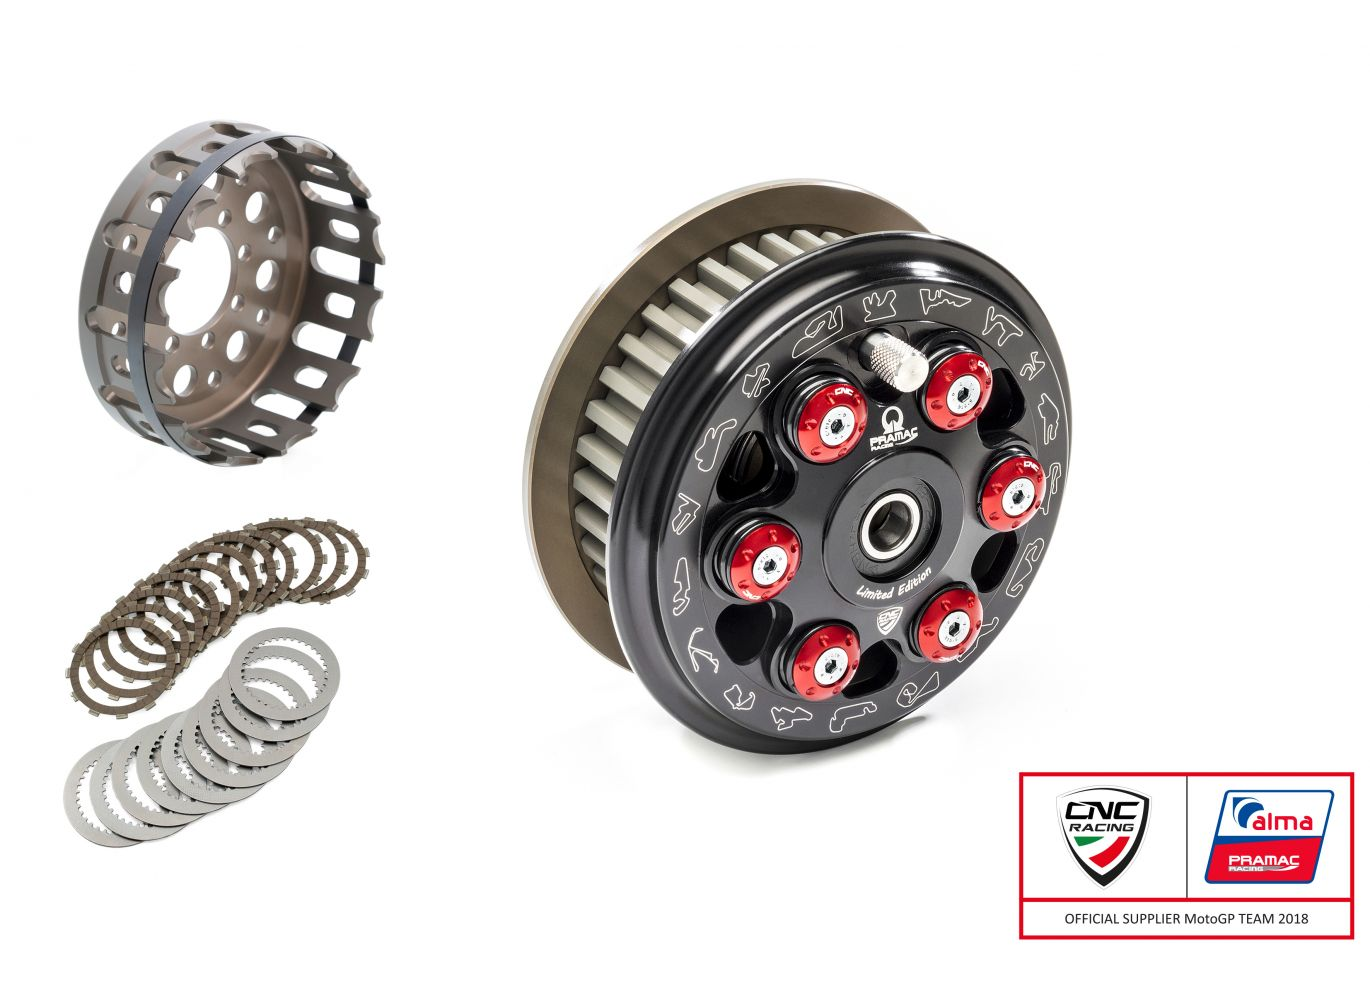 Ducati Slipper Clutch Review